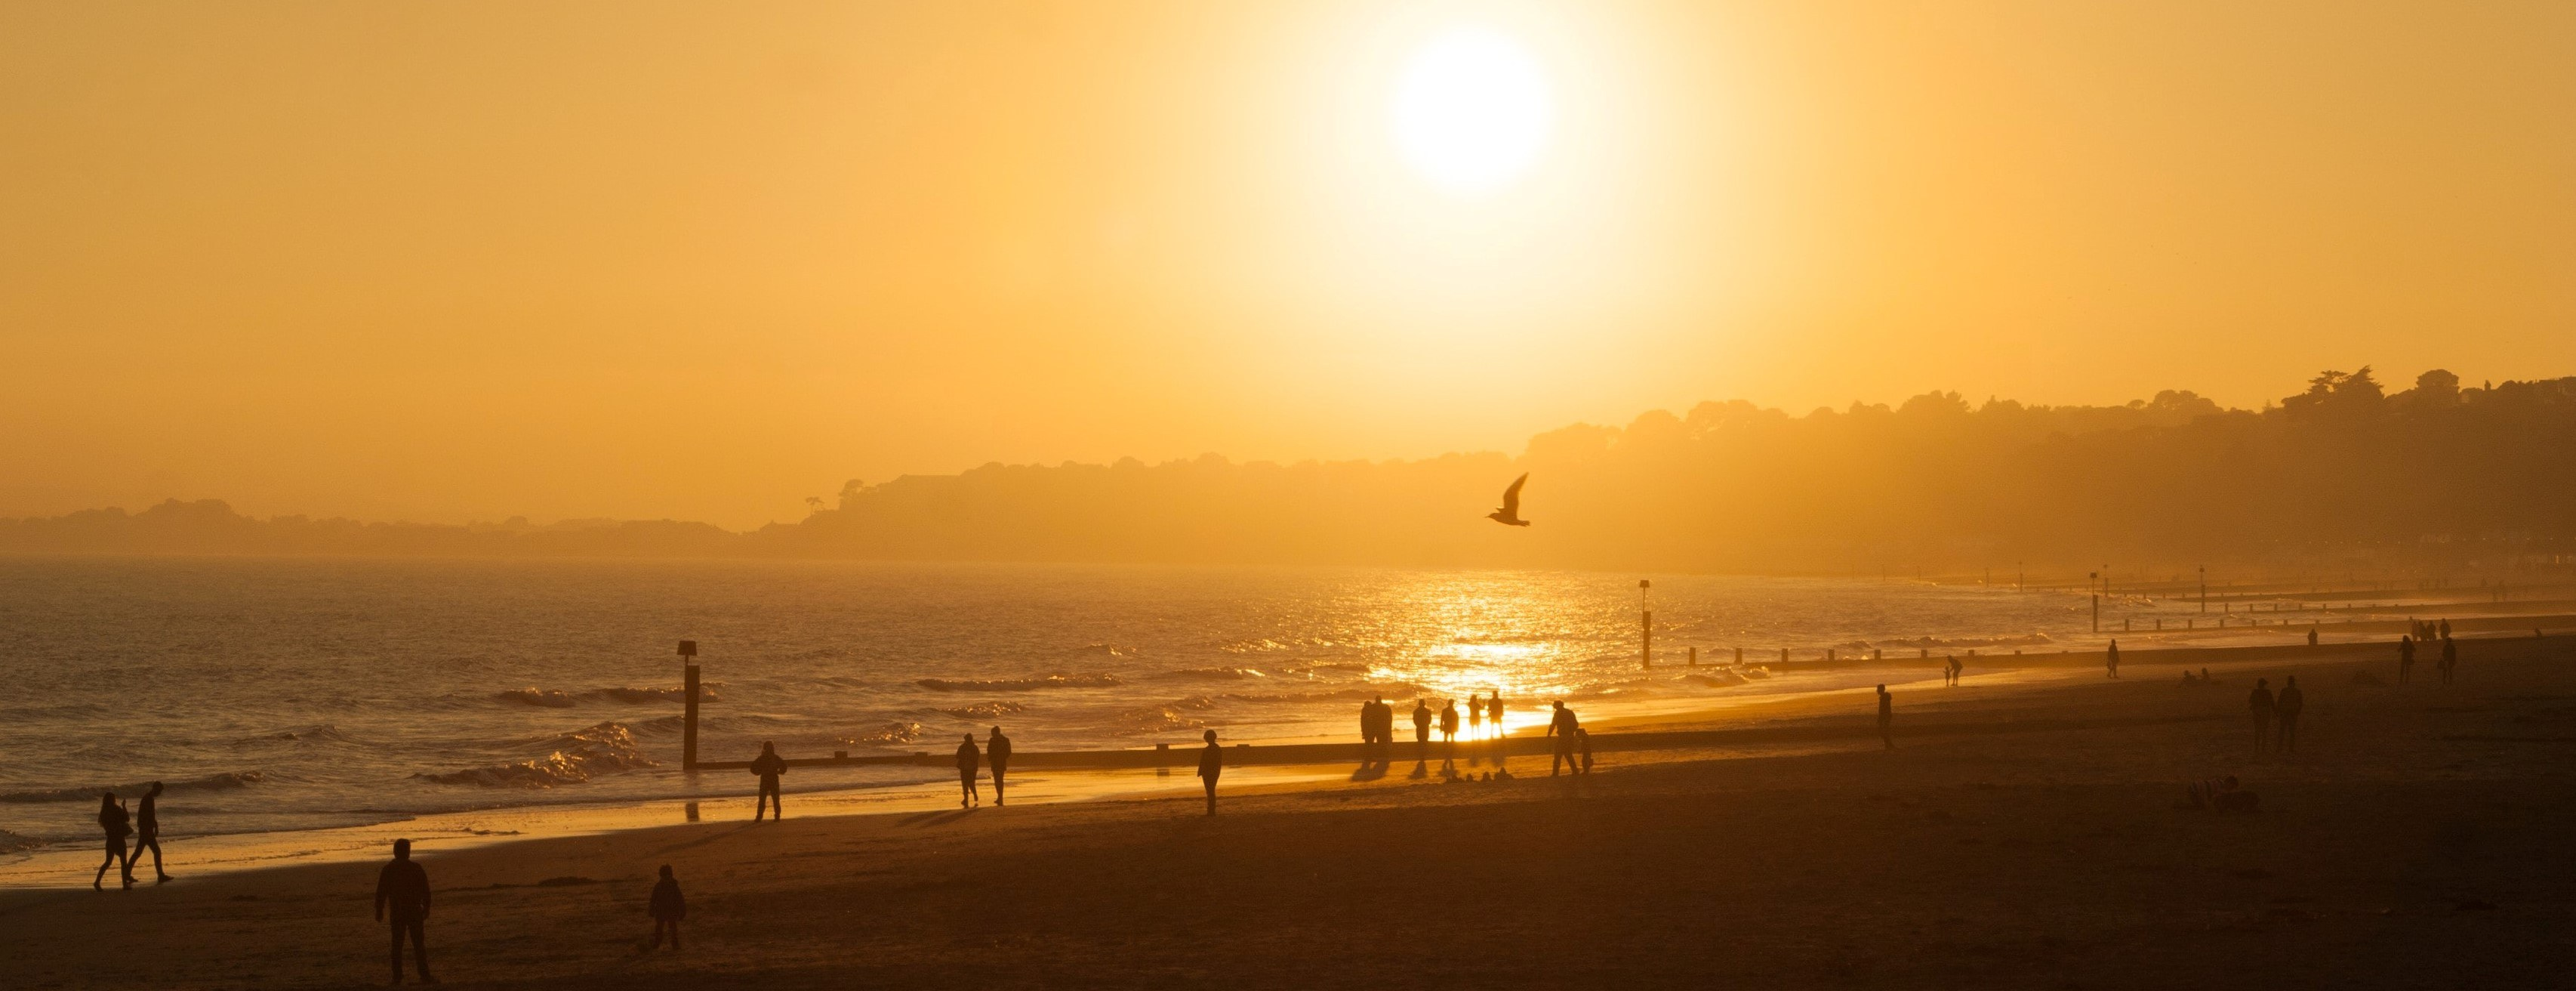 Why Bournemouth is the best place to spend digital marketing budget Image One image